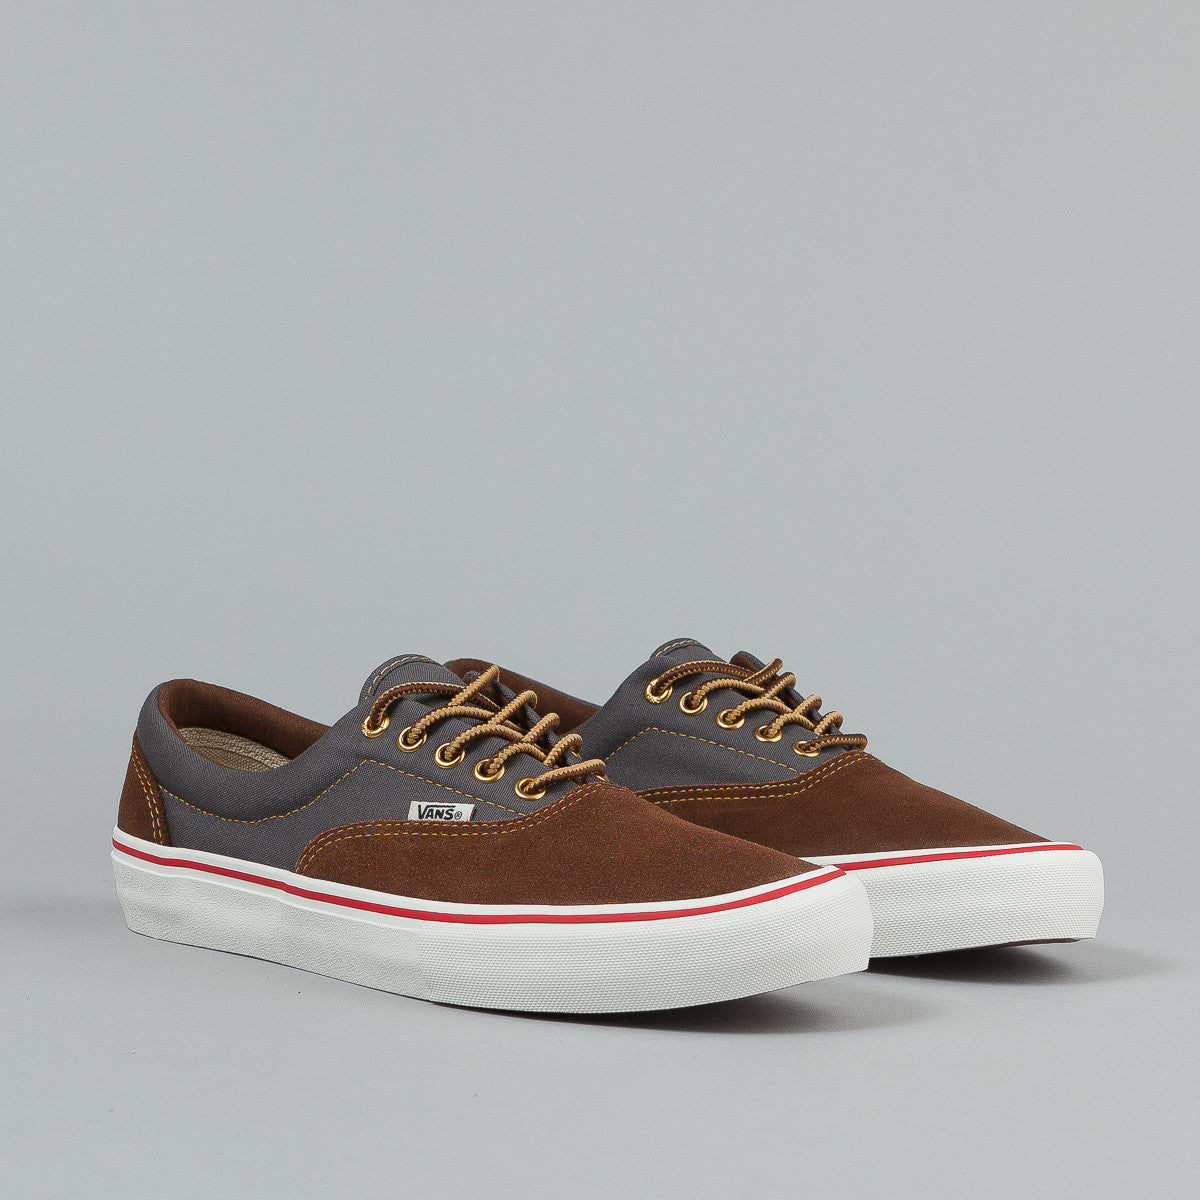 Vans X Antihero Era Pro Shoes - Brown / Cardiel